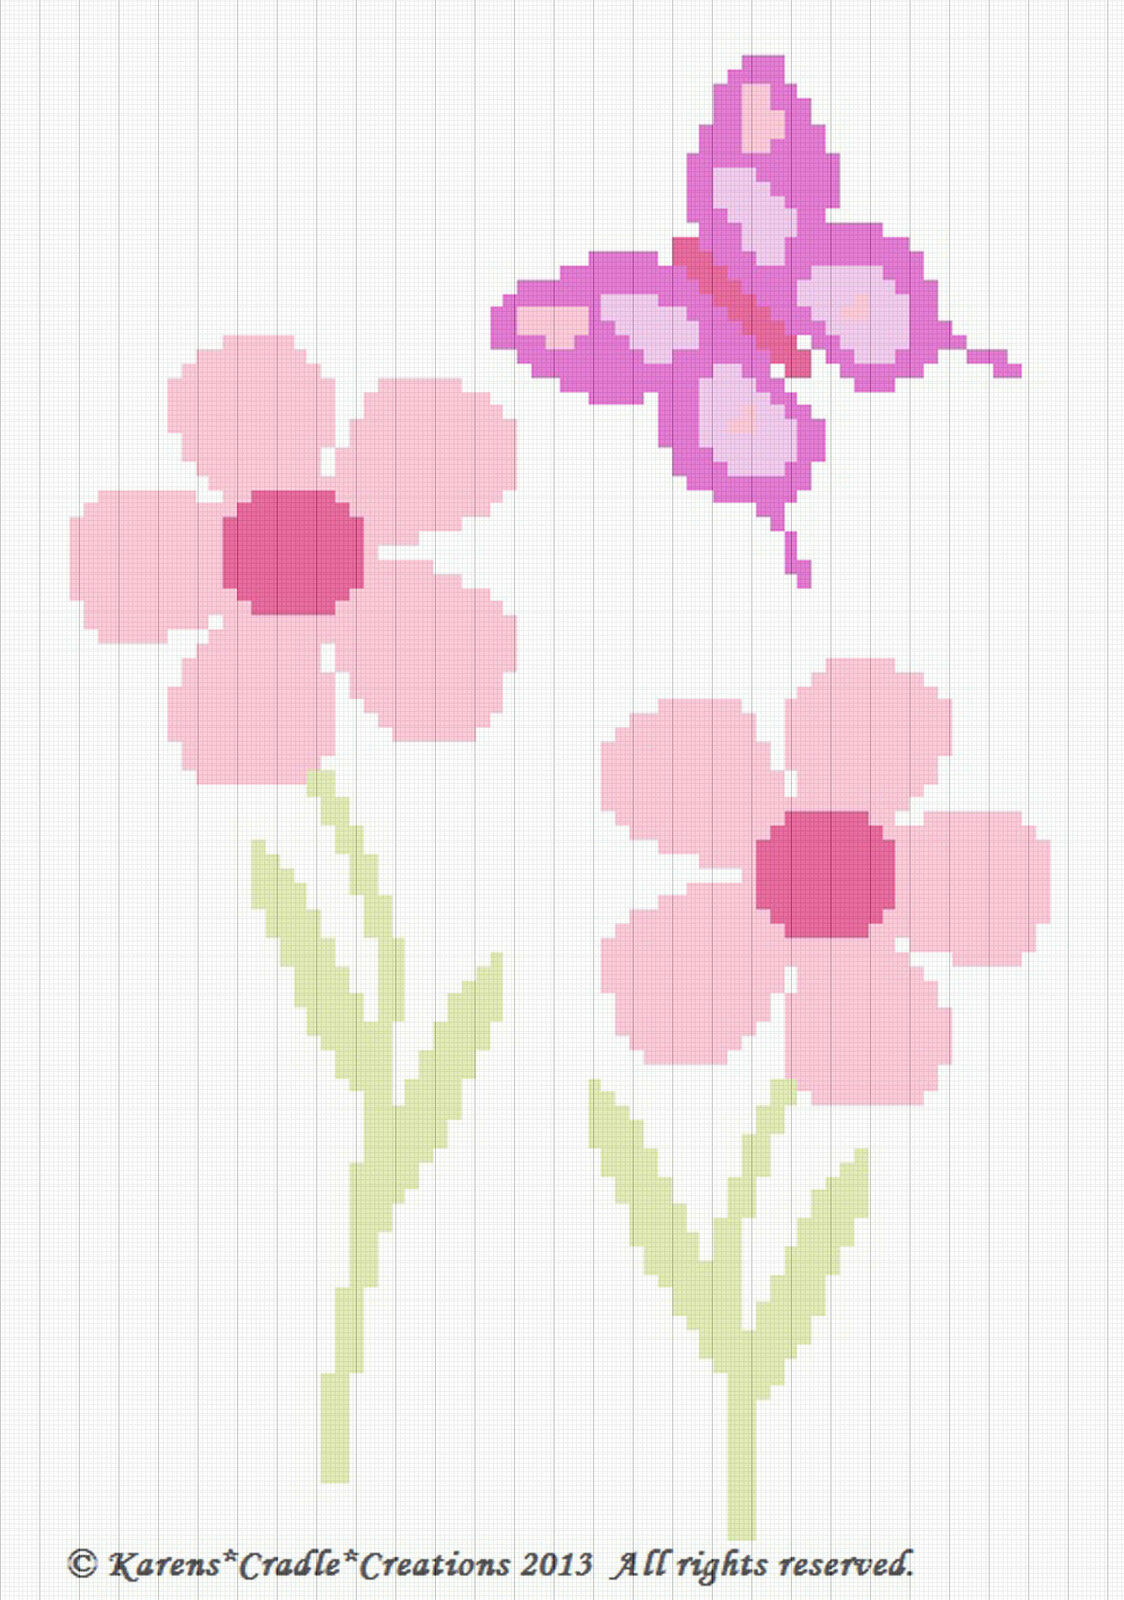 Crochet patterns daisy flowers with butterfly baby afghan pattern crochet patterns daisy flowers with butterfly baby afghan pattern easy 1 of 1 see more izmirmasajfo